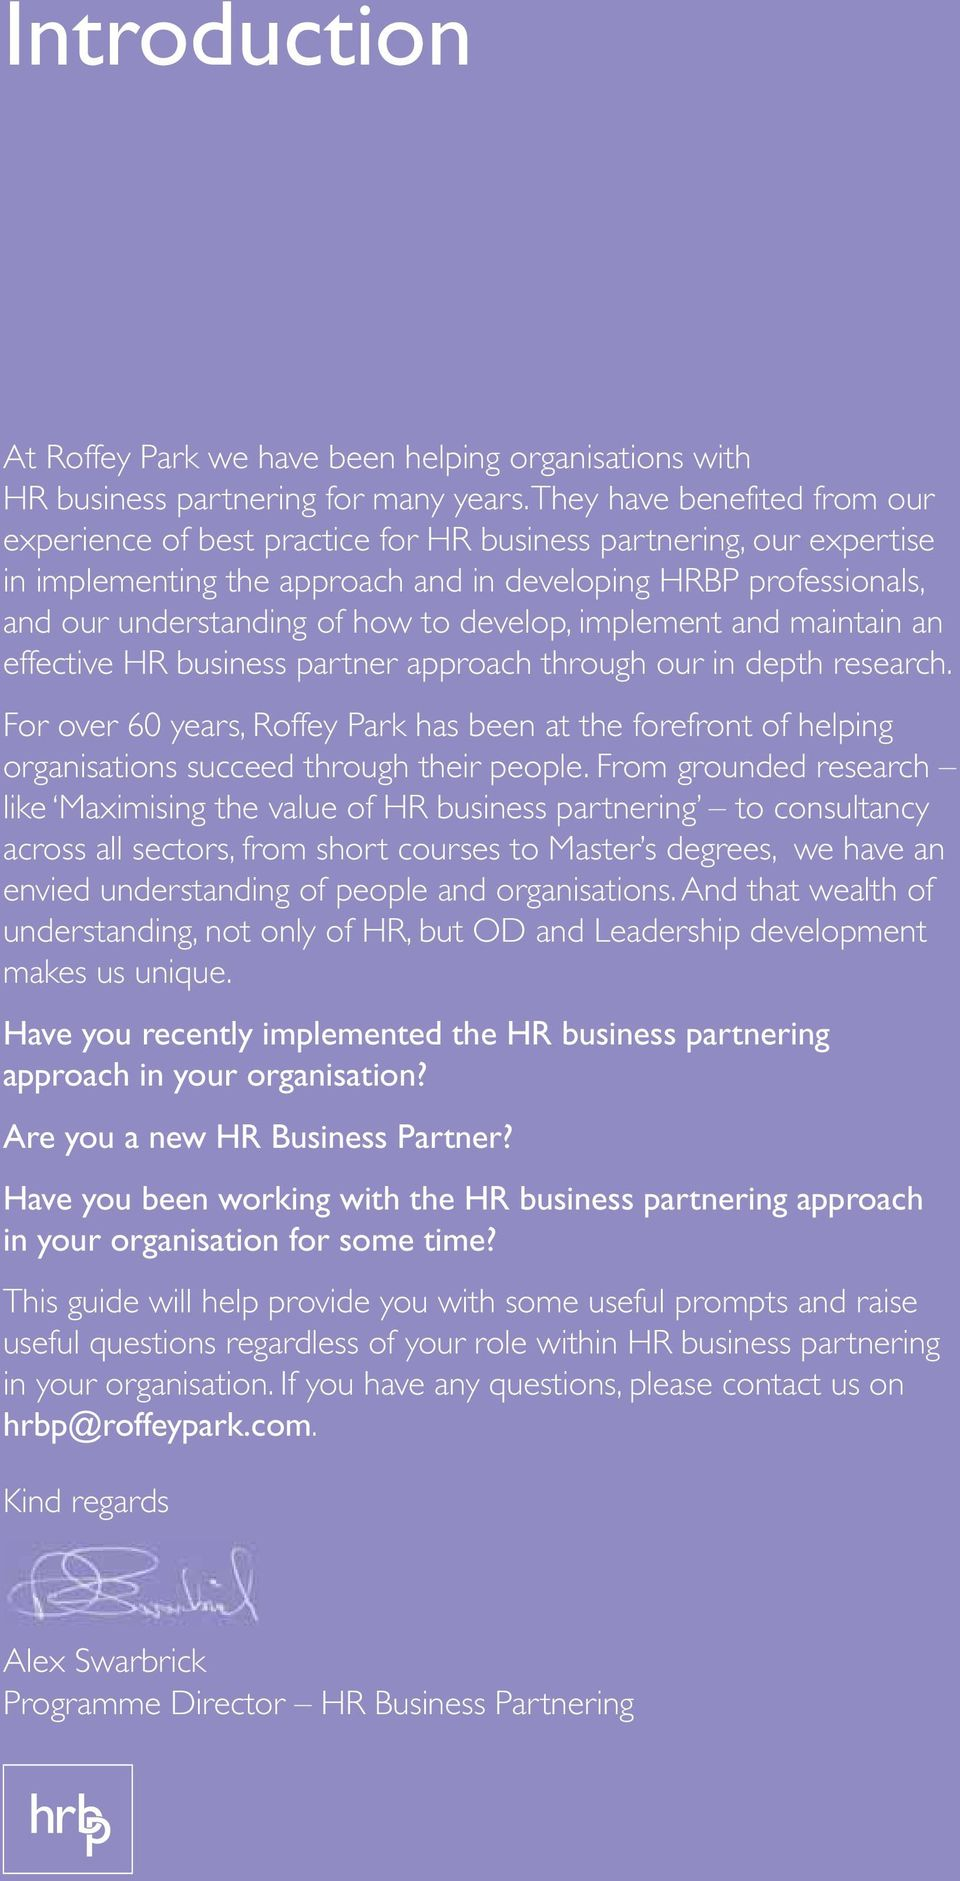 develop, implement and maintain an effective HR business partner approach through our in depth research.